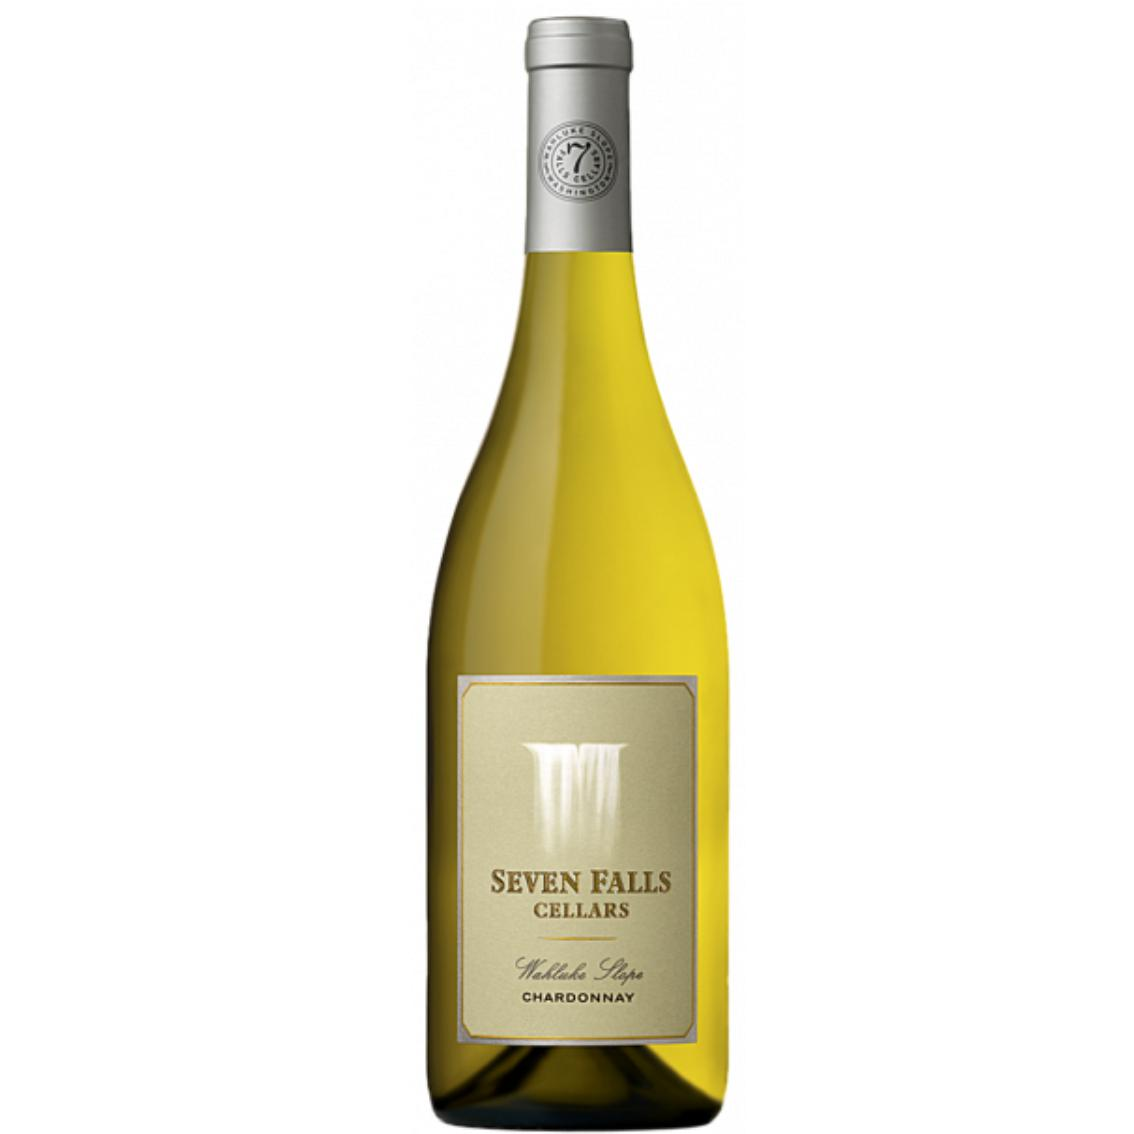 2015 Chardonnay Seven Falls Cellars - Wahluke Slope Washington